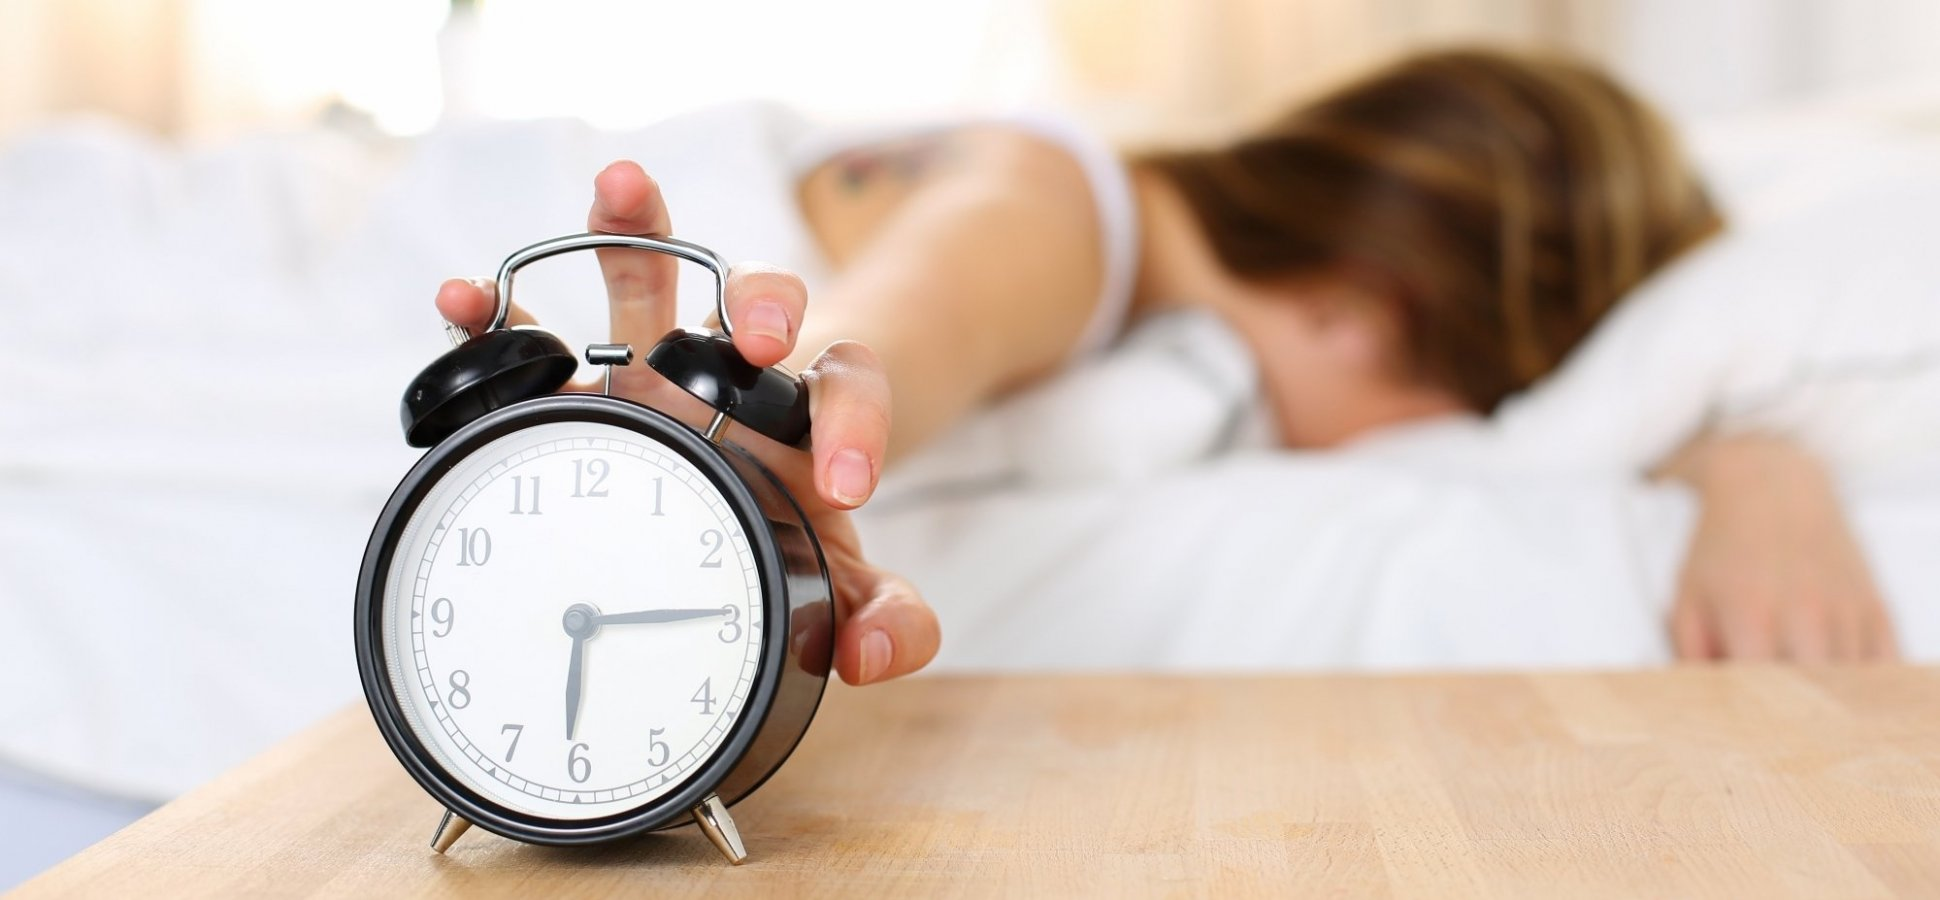 Discussion on this topic: Study Reveals Why All-Nighters May Be So , study-reveals-why-all-nighters-may-be-so/